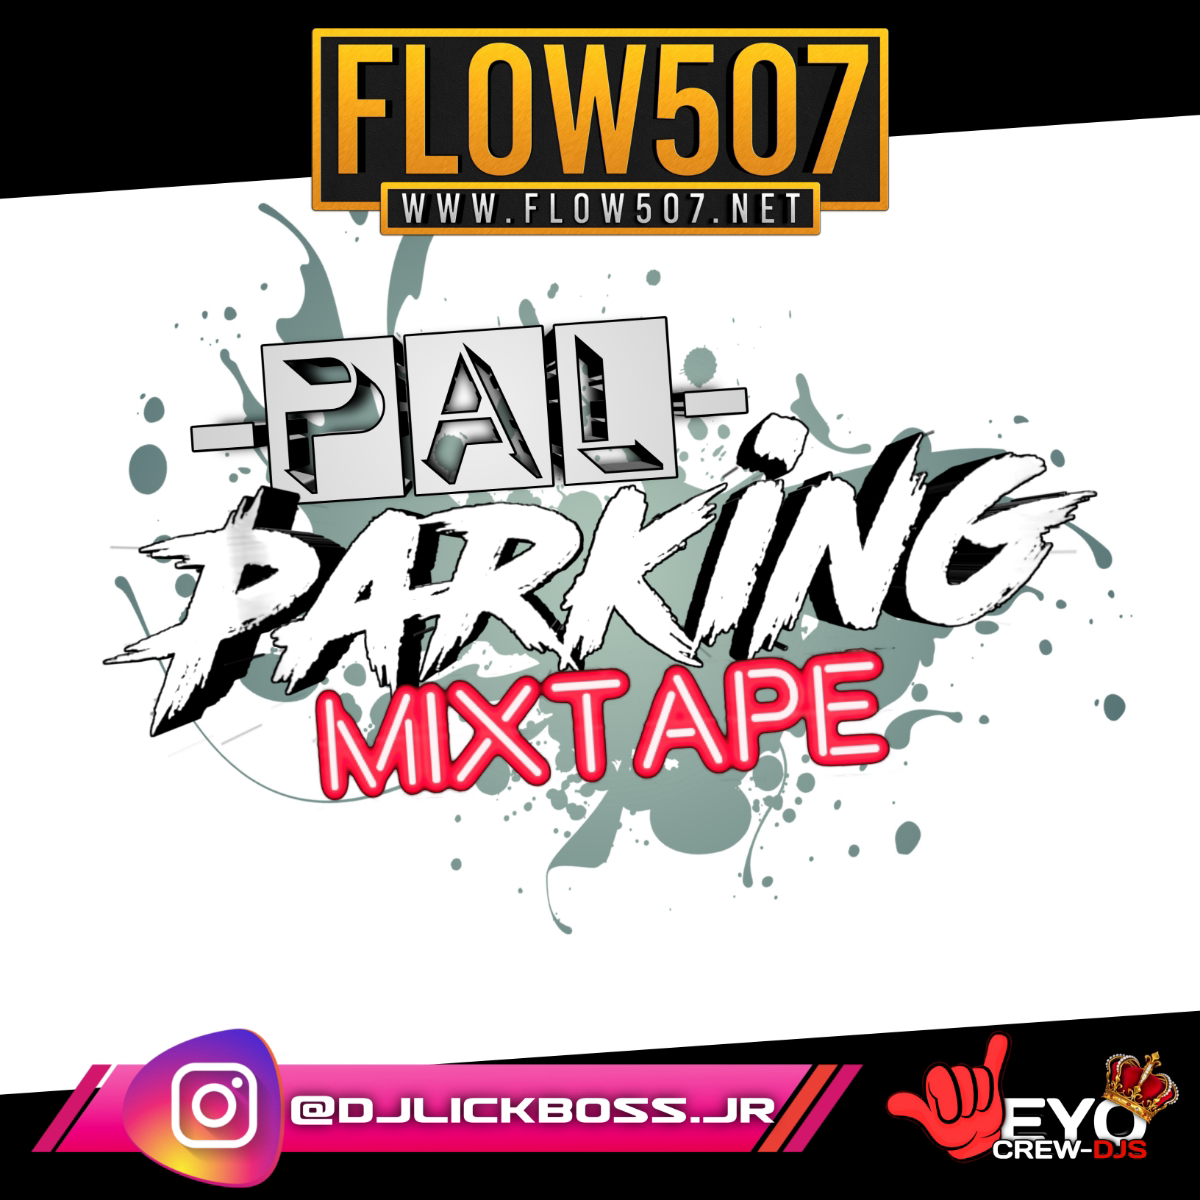 @DJLICKBOSS.JR -  PAL PARKING MIXTAPE PLENA TRAS PLENA